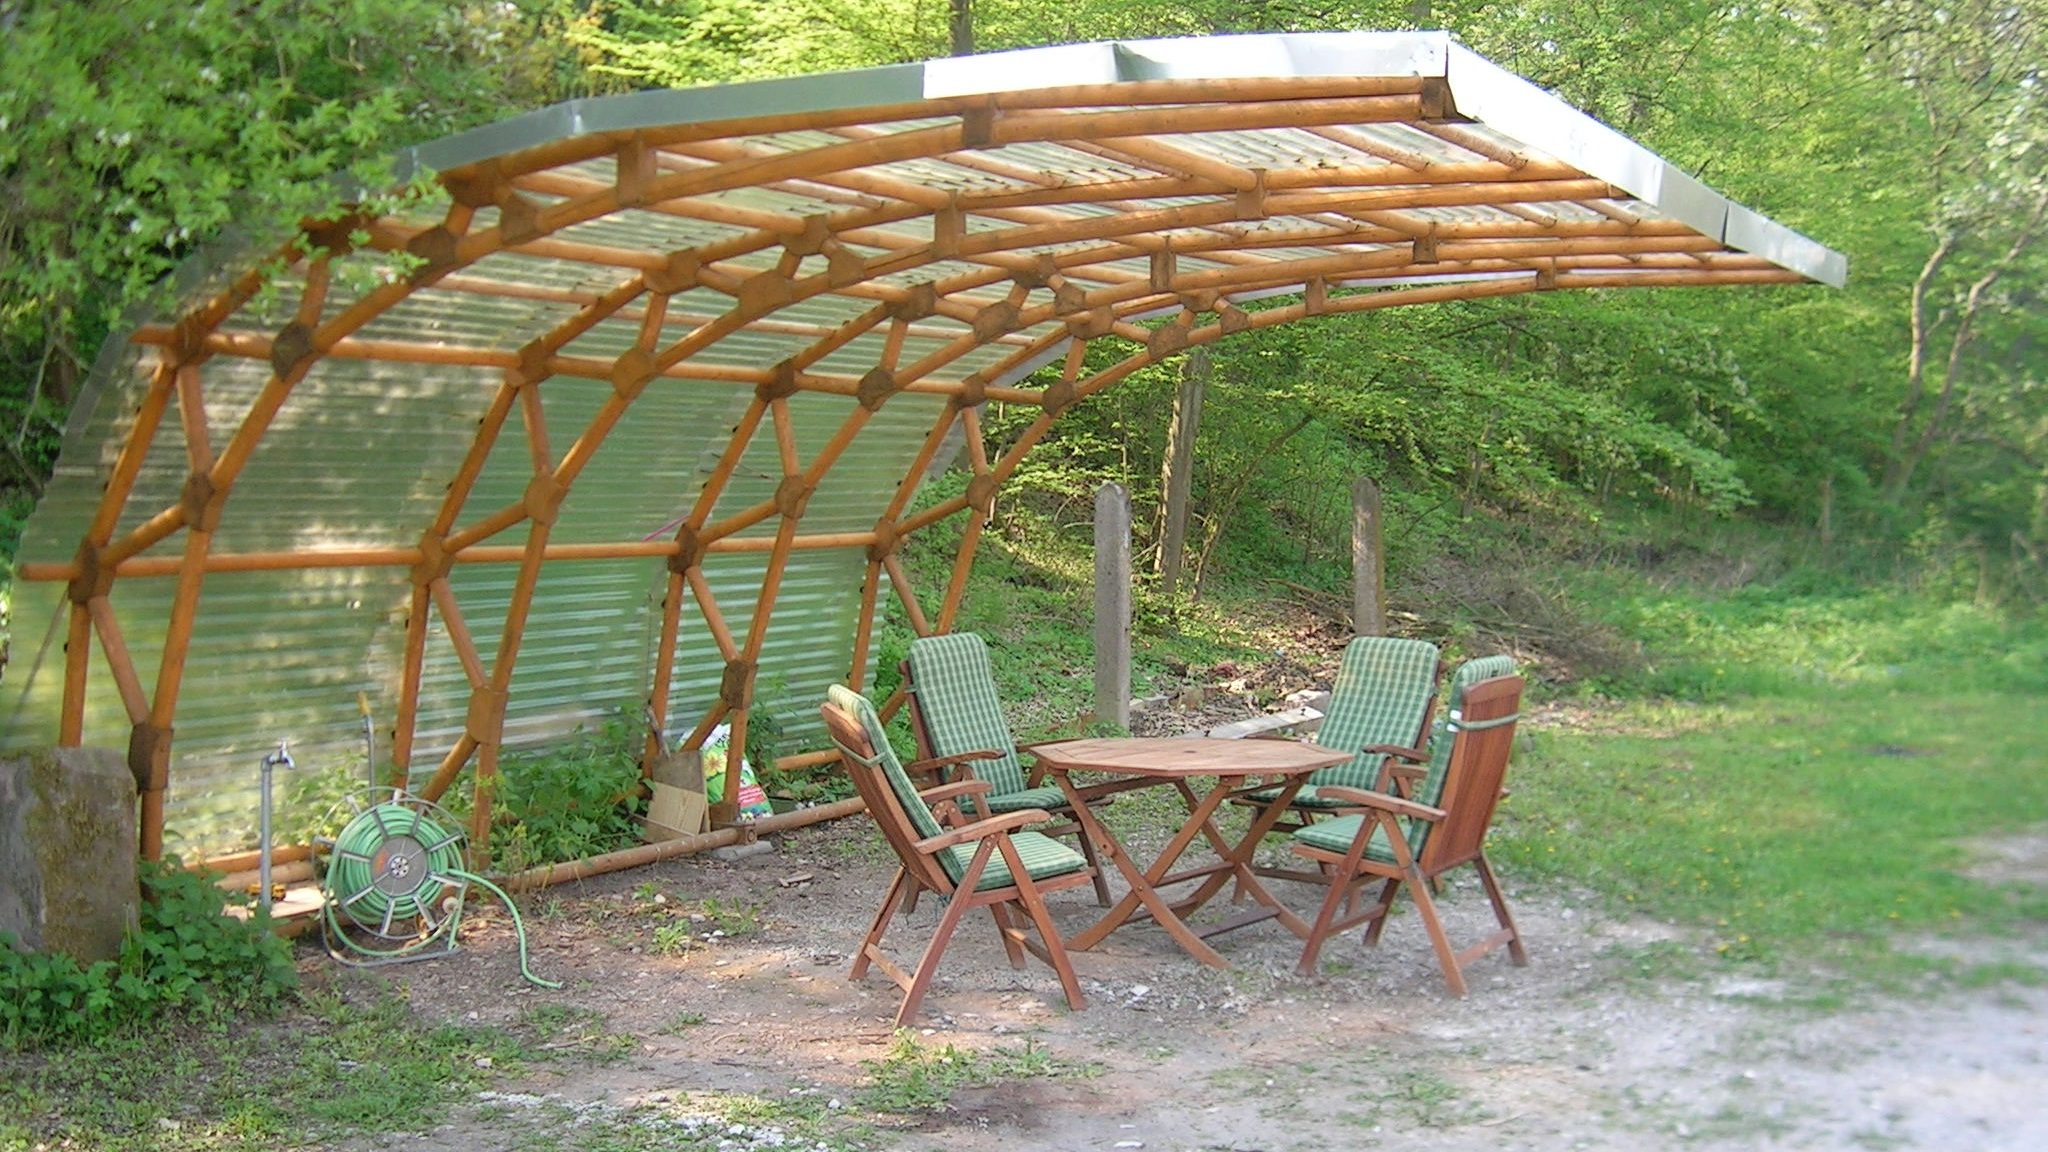 Carport as sitting area